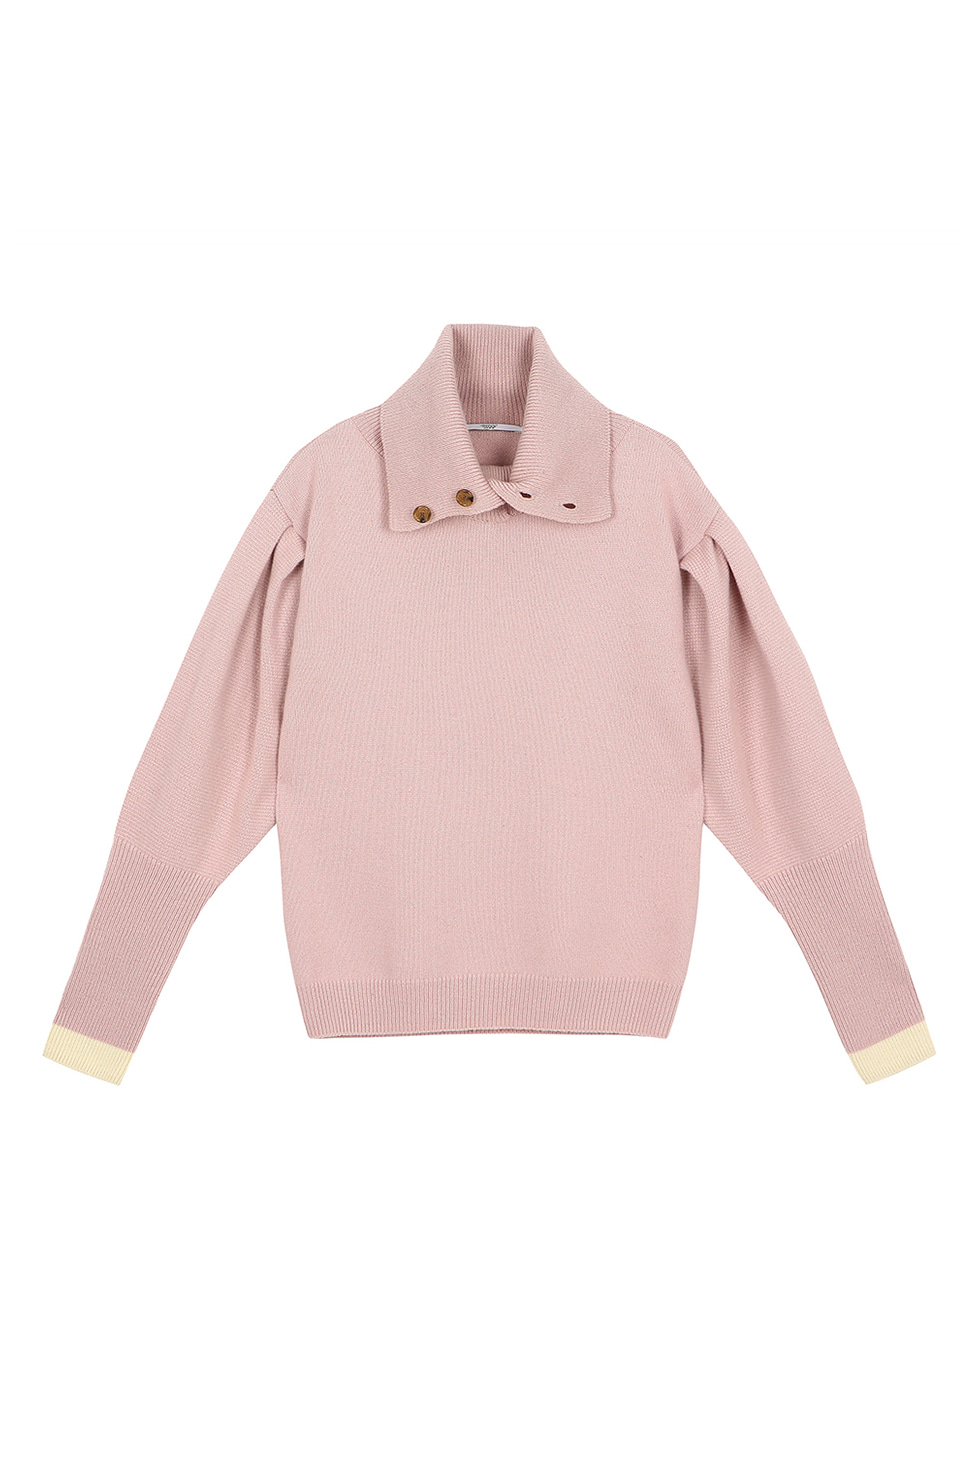 PUFF SLEEVE PULLOVER - PINK